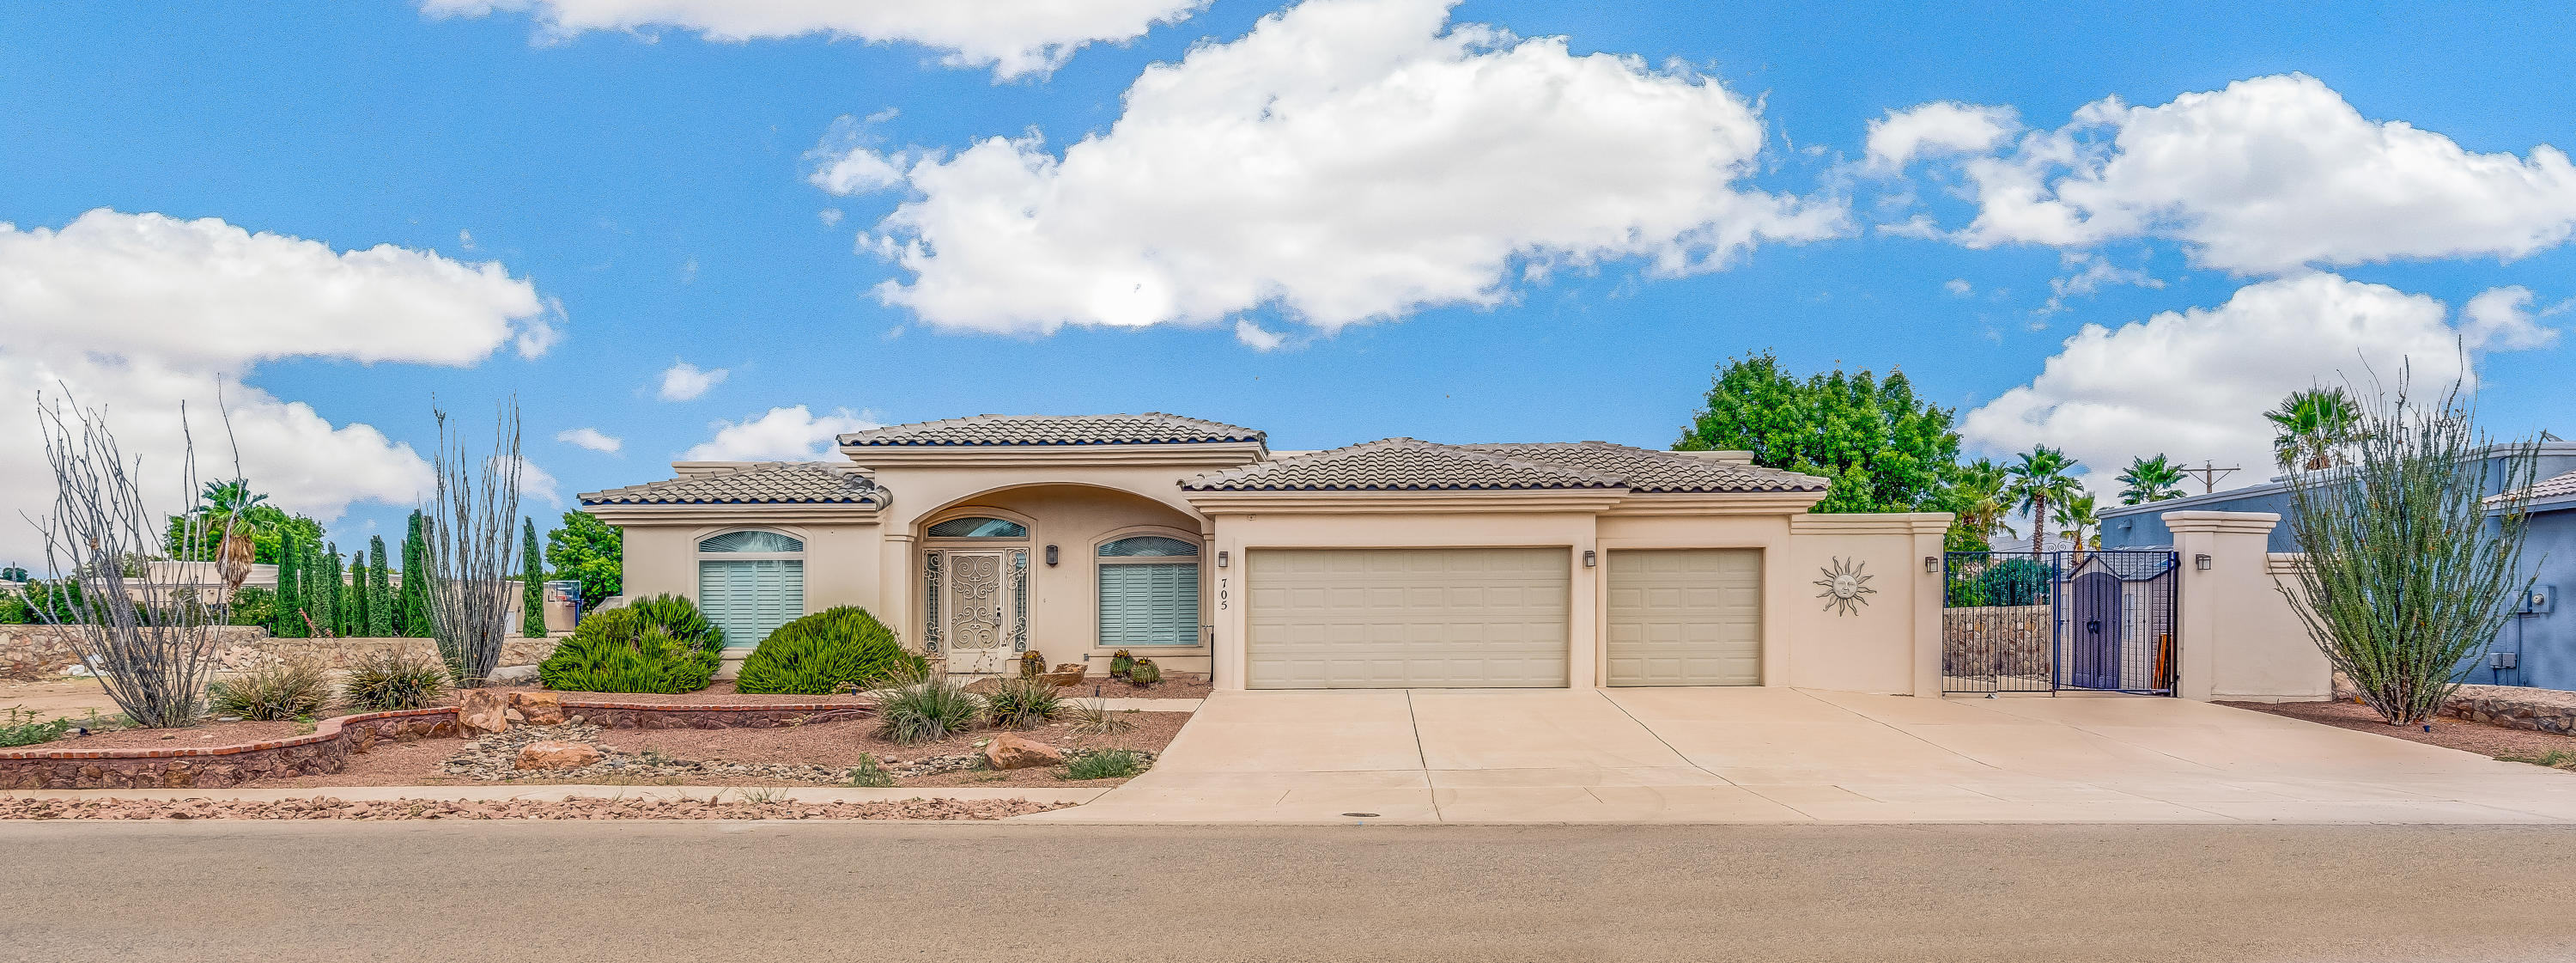 705 Whitney Ann, El Paso, Texas 79932, 3 Bedrooms Bedrooms, ,4 BathroomsBathrooms,Residential,For sale,Whitney Ann,813879